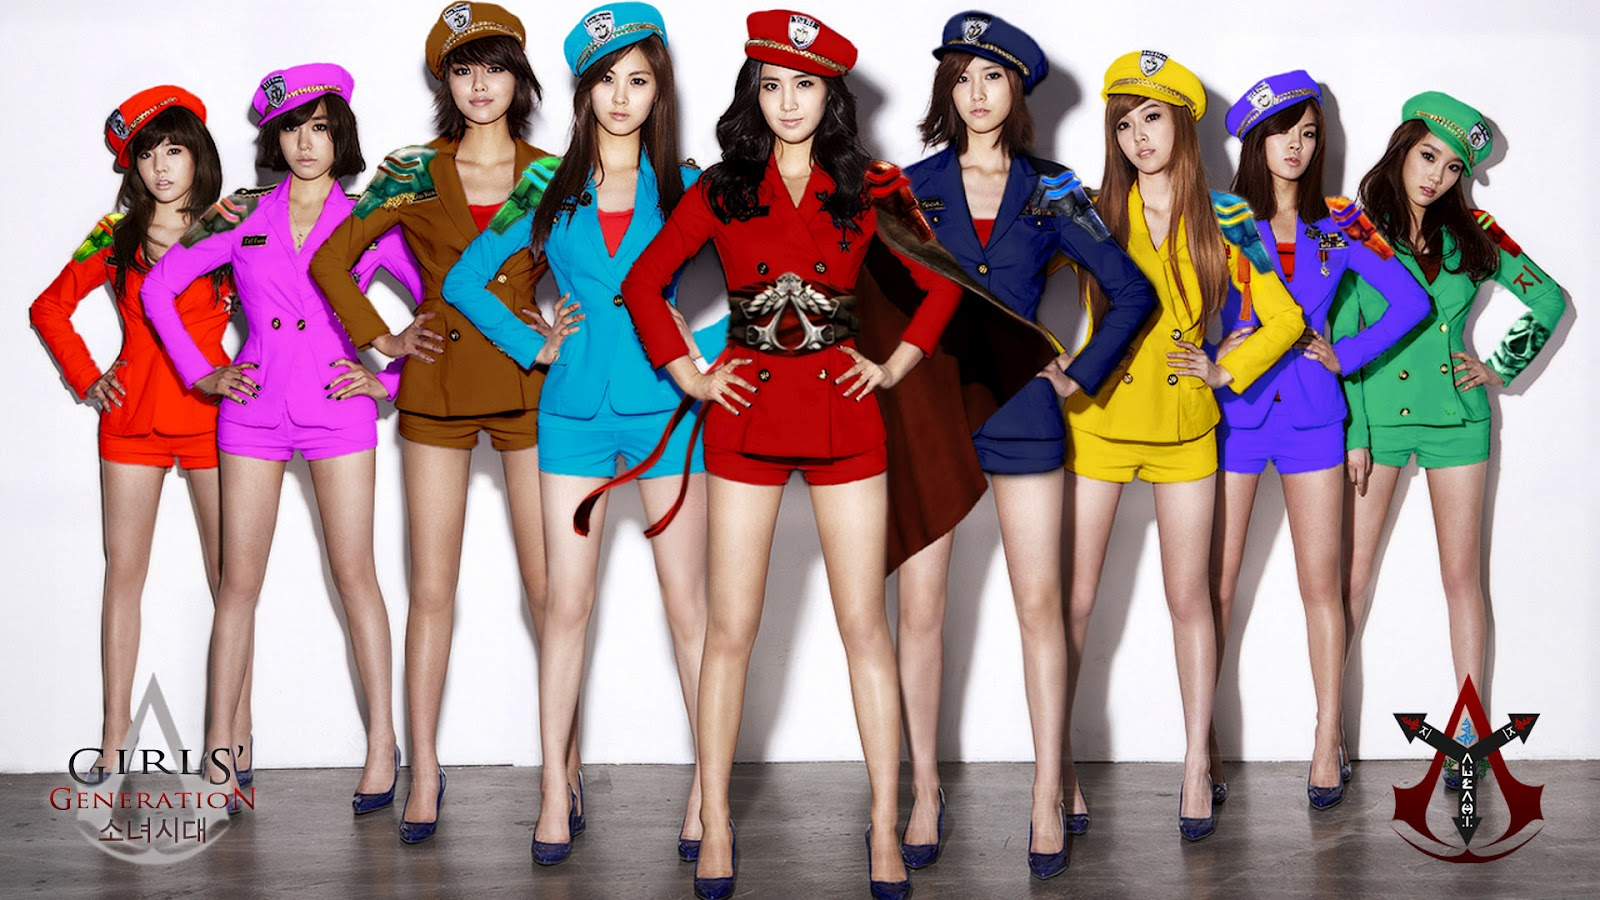 http://3.bp.blogspot.com/-2I9B_DK7Yso/UE_cw2lHQ5I/AAAAAAAAGvI/BYpJuFcP9qo/s1600/Girls+Generation+Colorful+Sailor+Suits.jpg